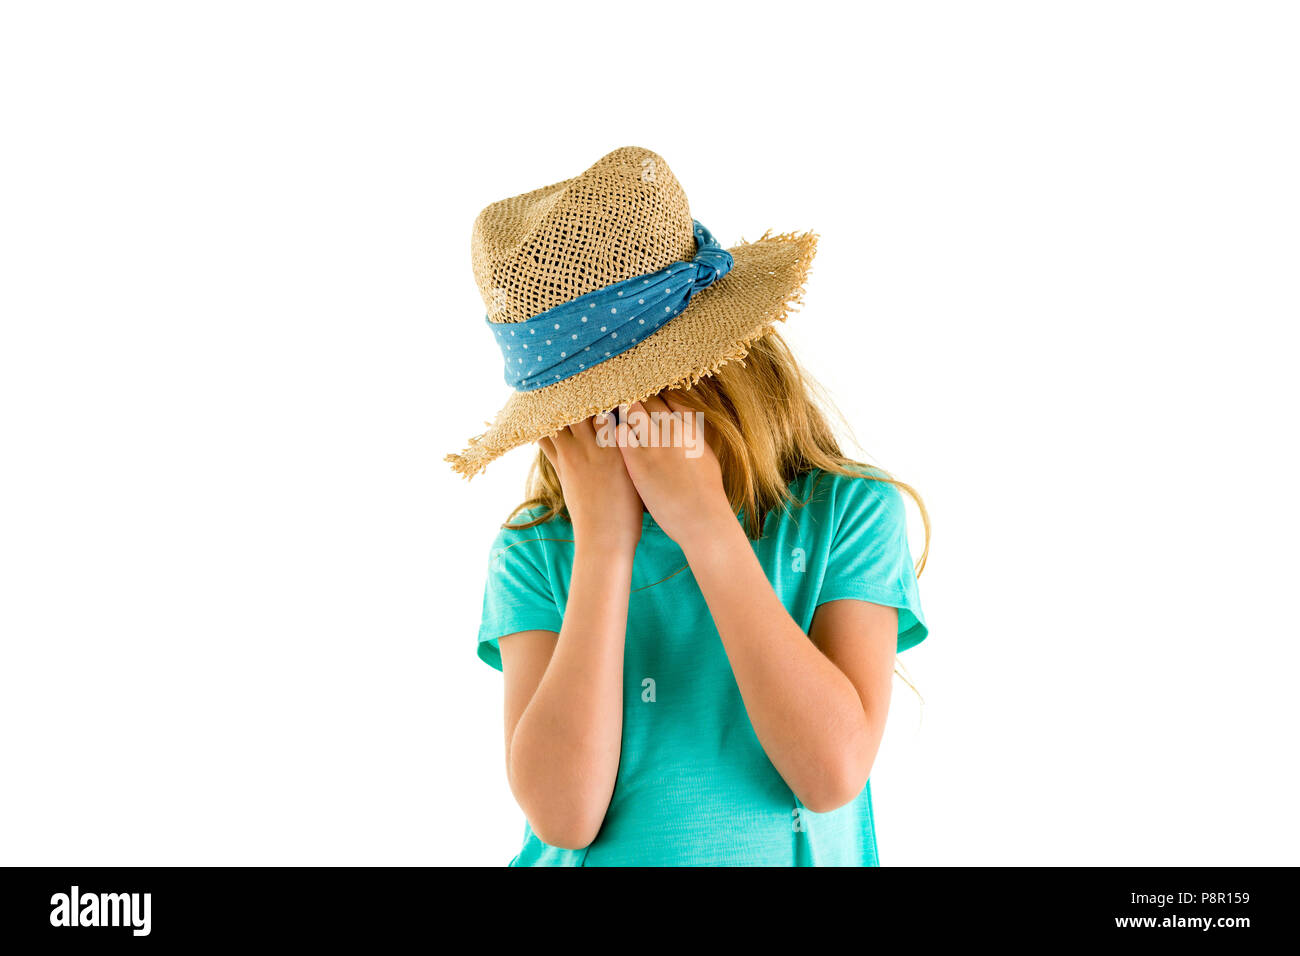 Upset little girl wearing a wide-brimmed straw sunhat sobbing into her hands as she covers her face isolated on white with copy space - Stock Image